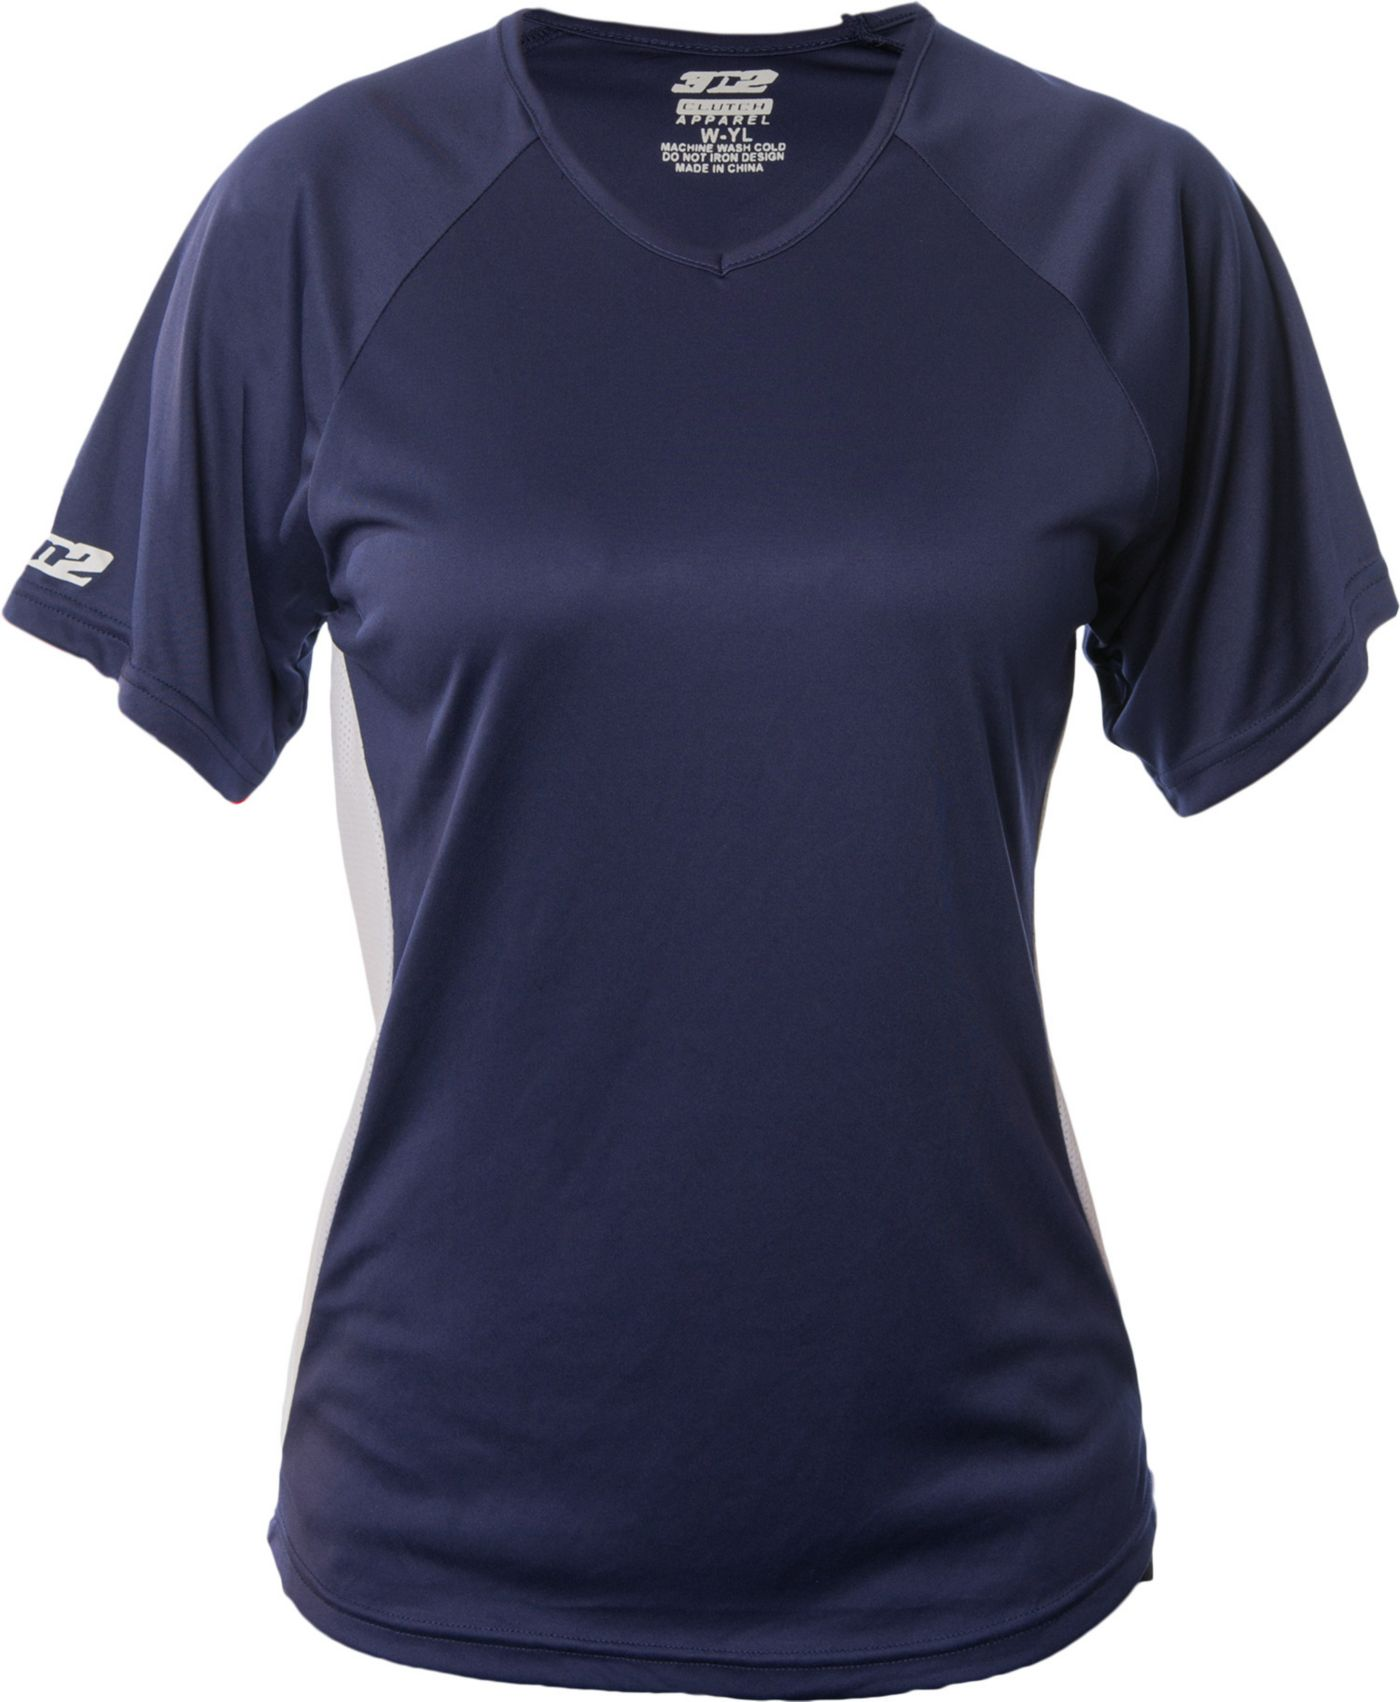 3N2 Girls' NuFIT Jersey